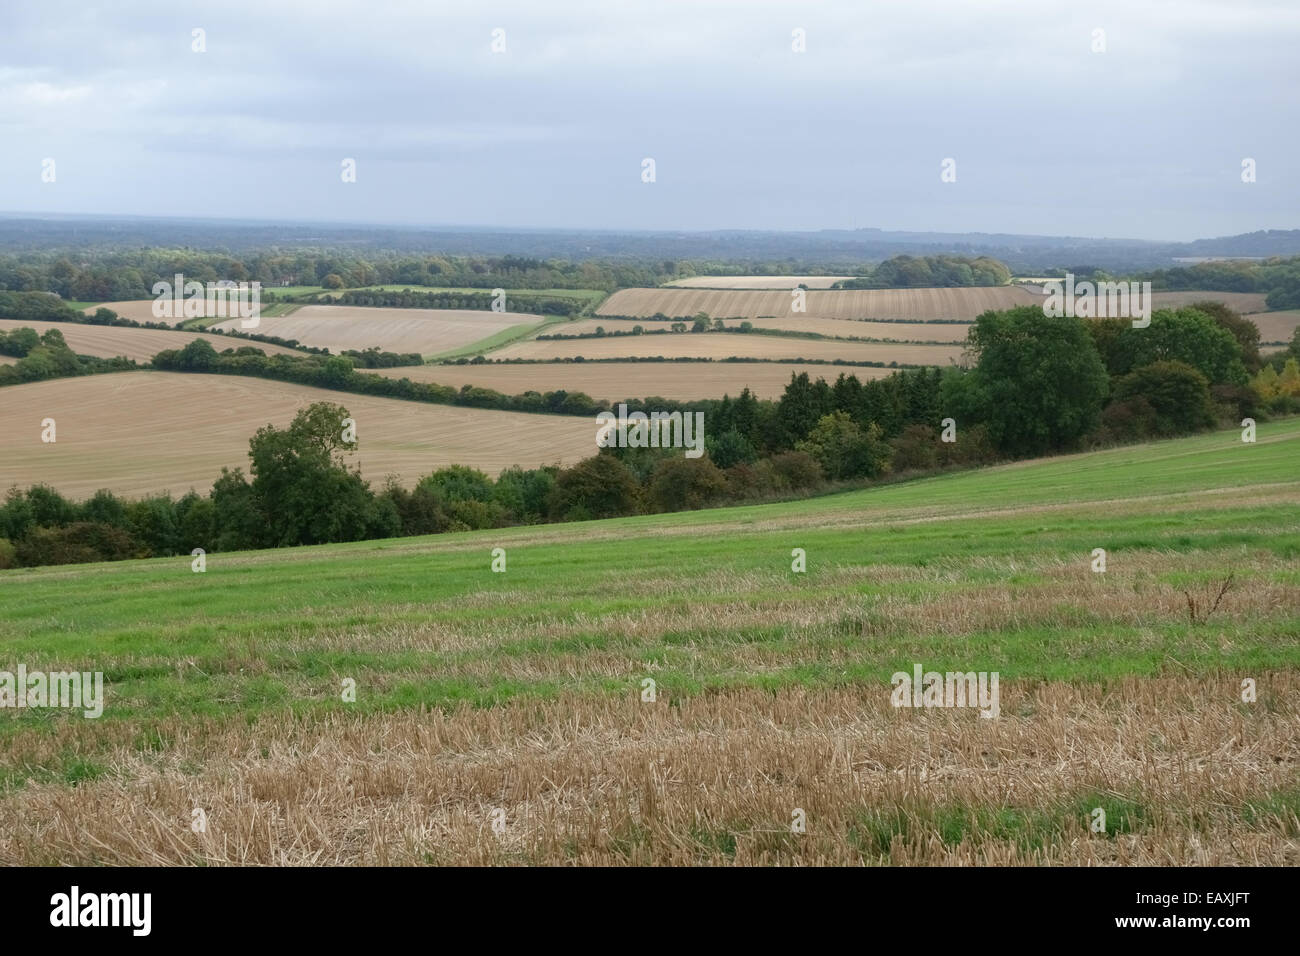 Wheat stubble with some crop and weed regrowth in early autumn, Berkshire, September - Stock Image